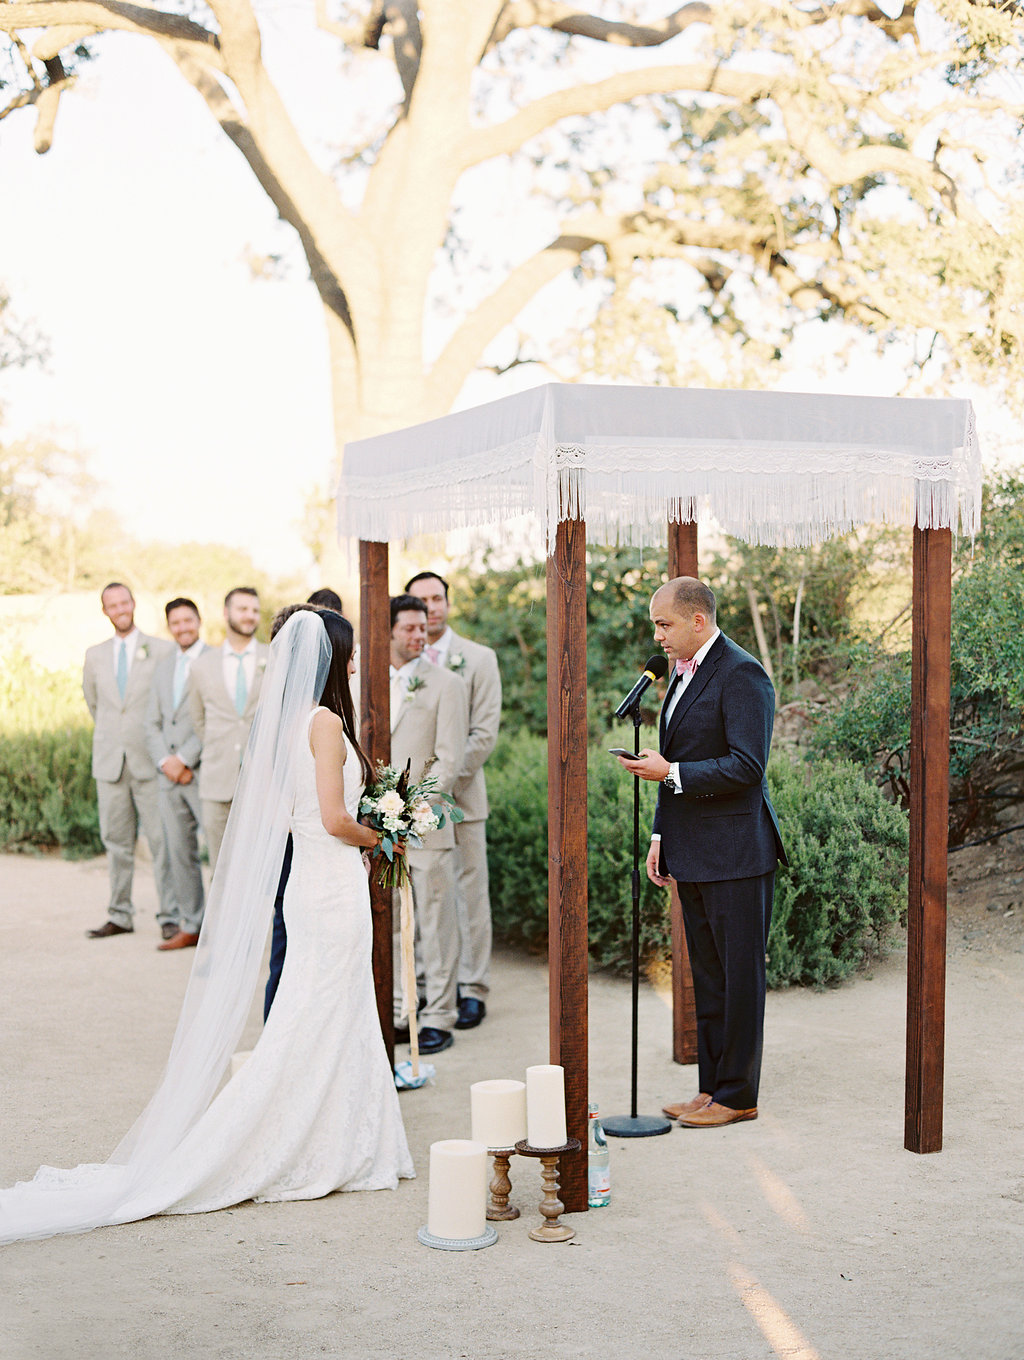 www.santabarbarawedding.com | Lavender and Twine | Sunstone Winery | Ceremony | Vows